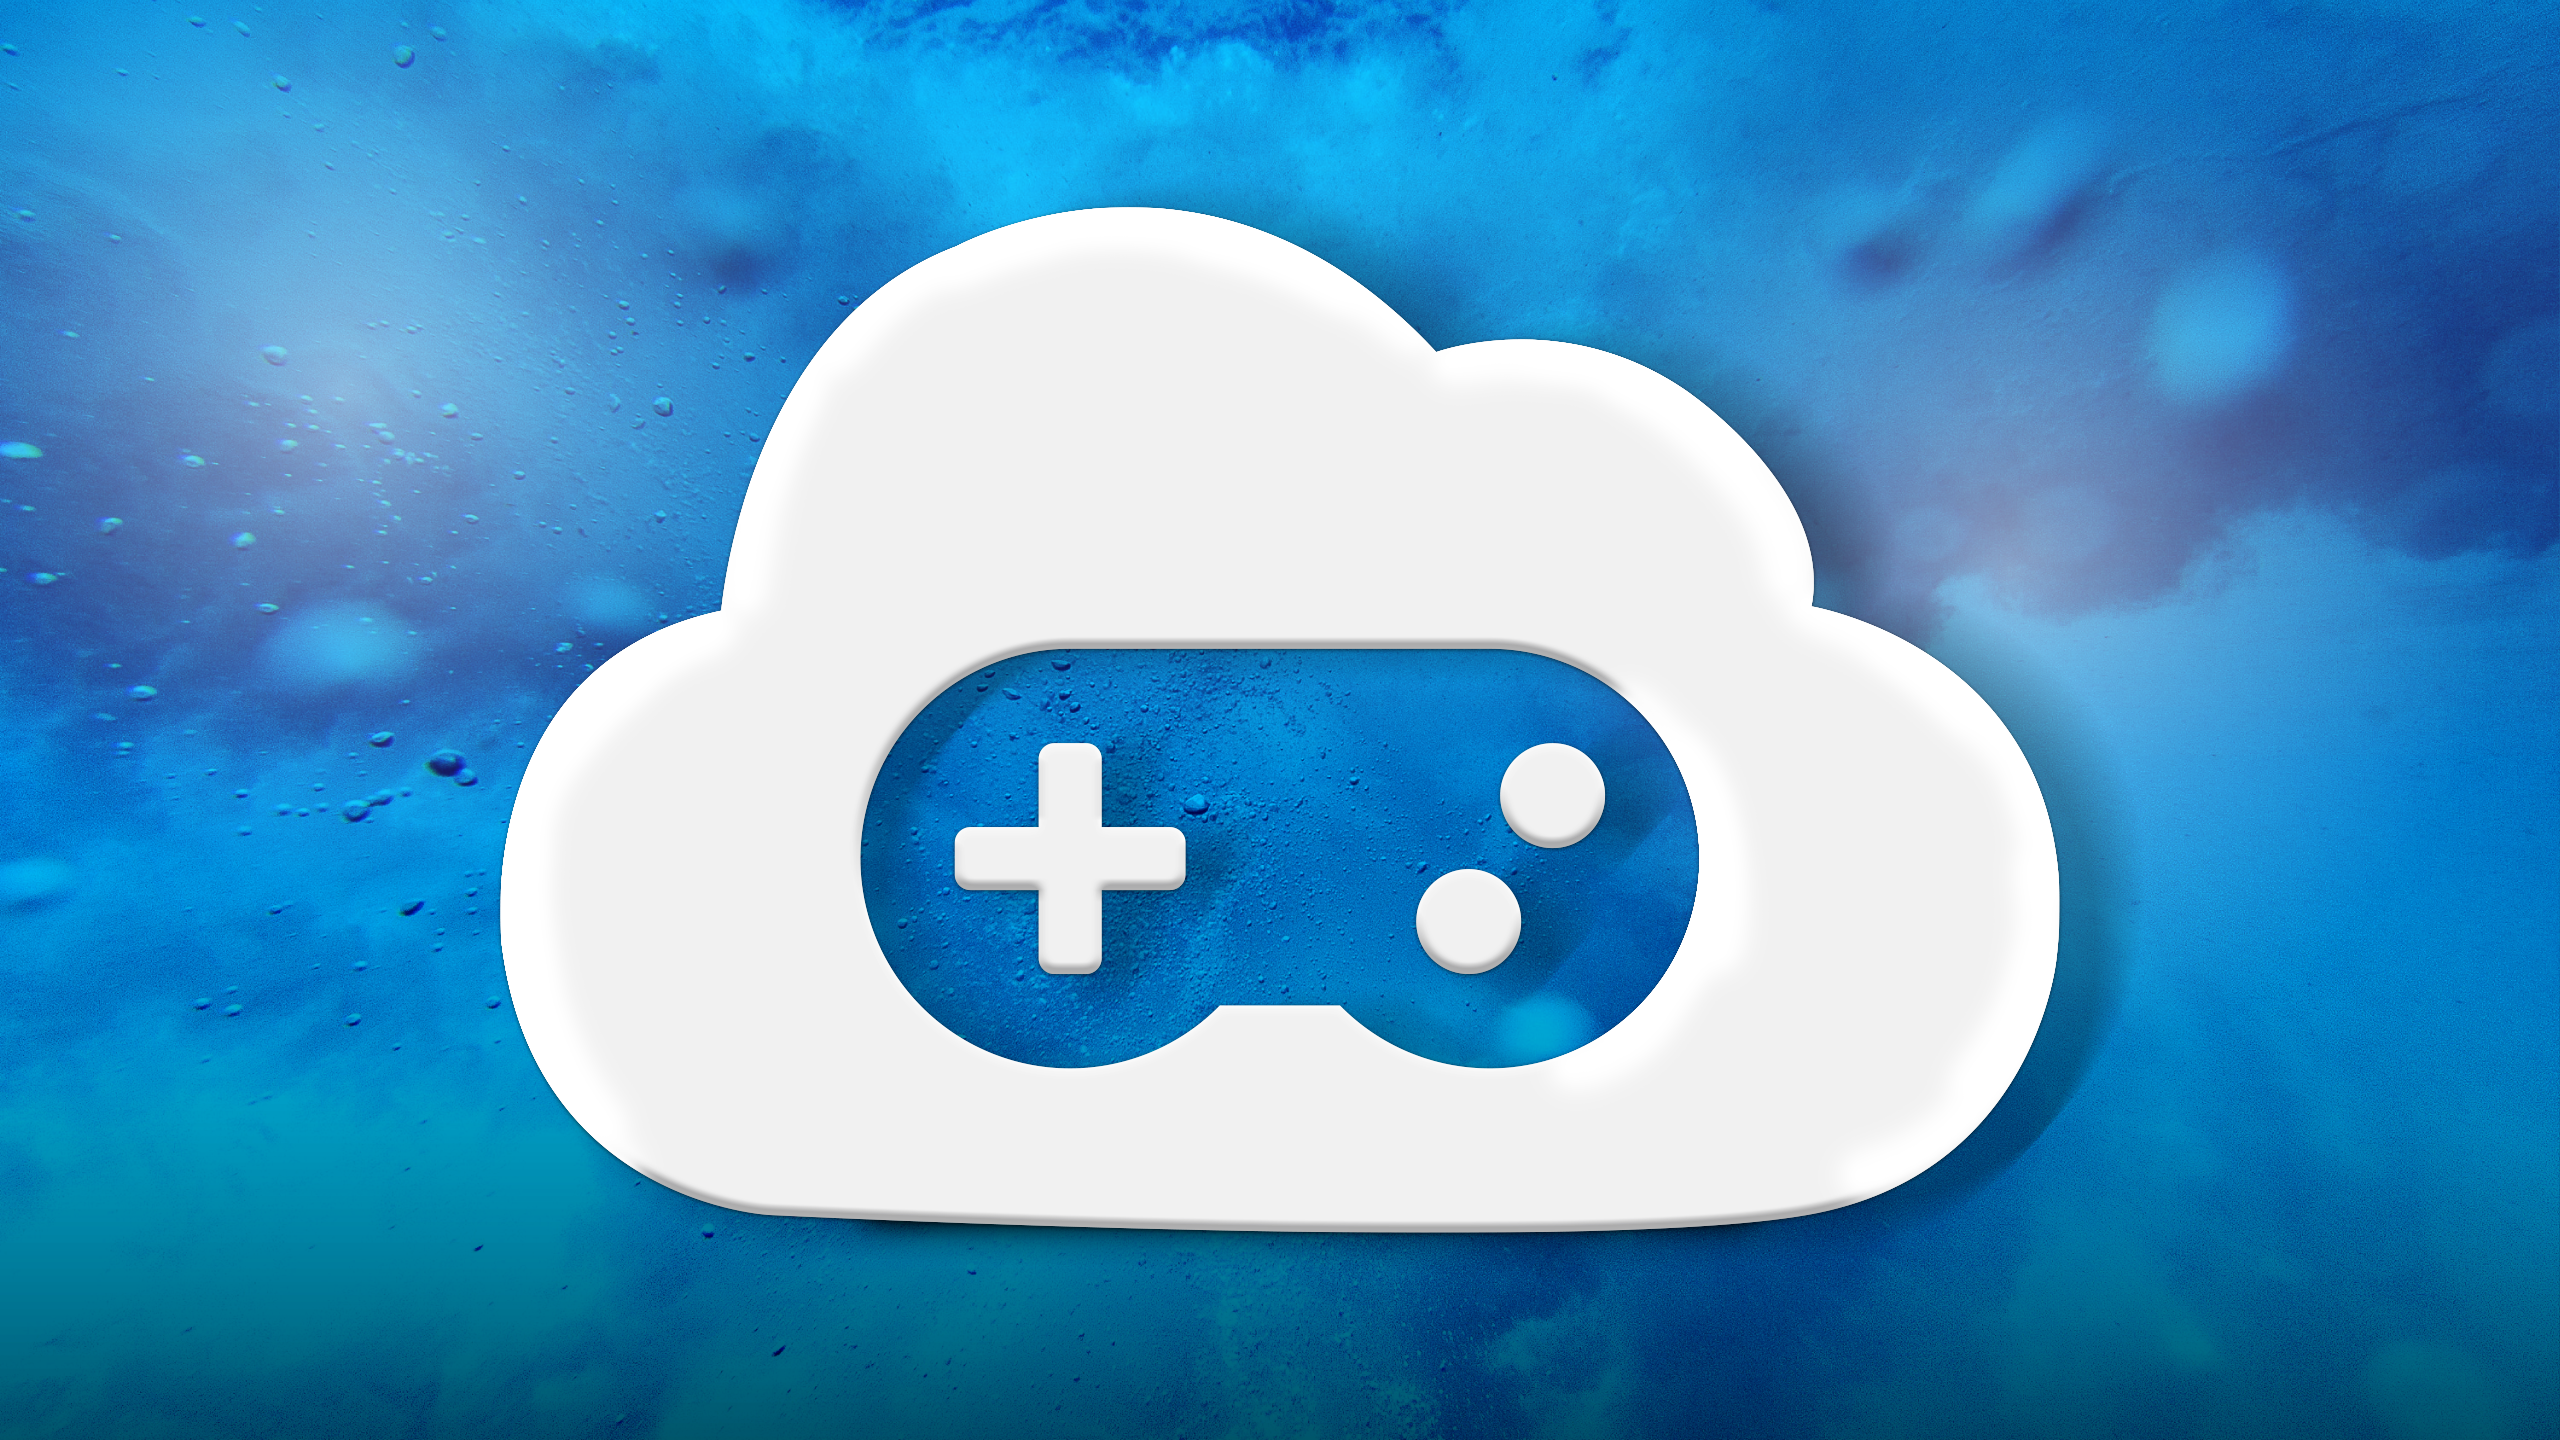 Cloud computing and video games